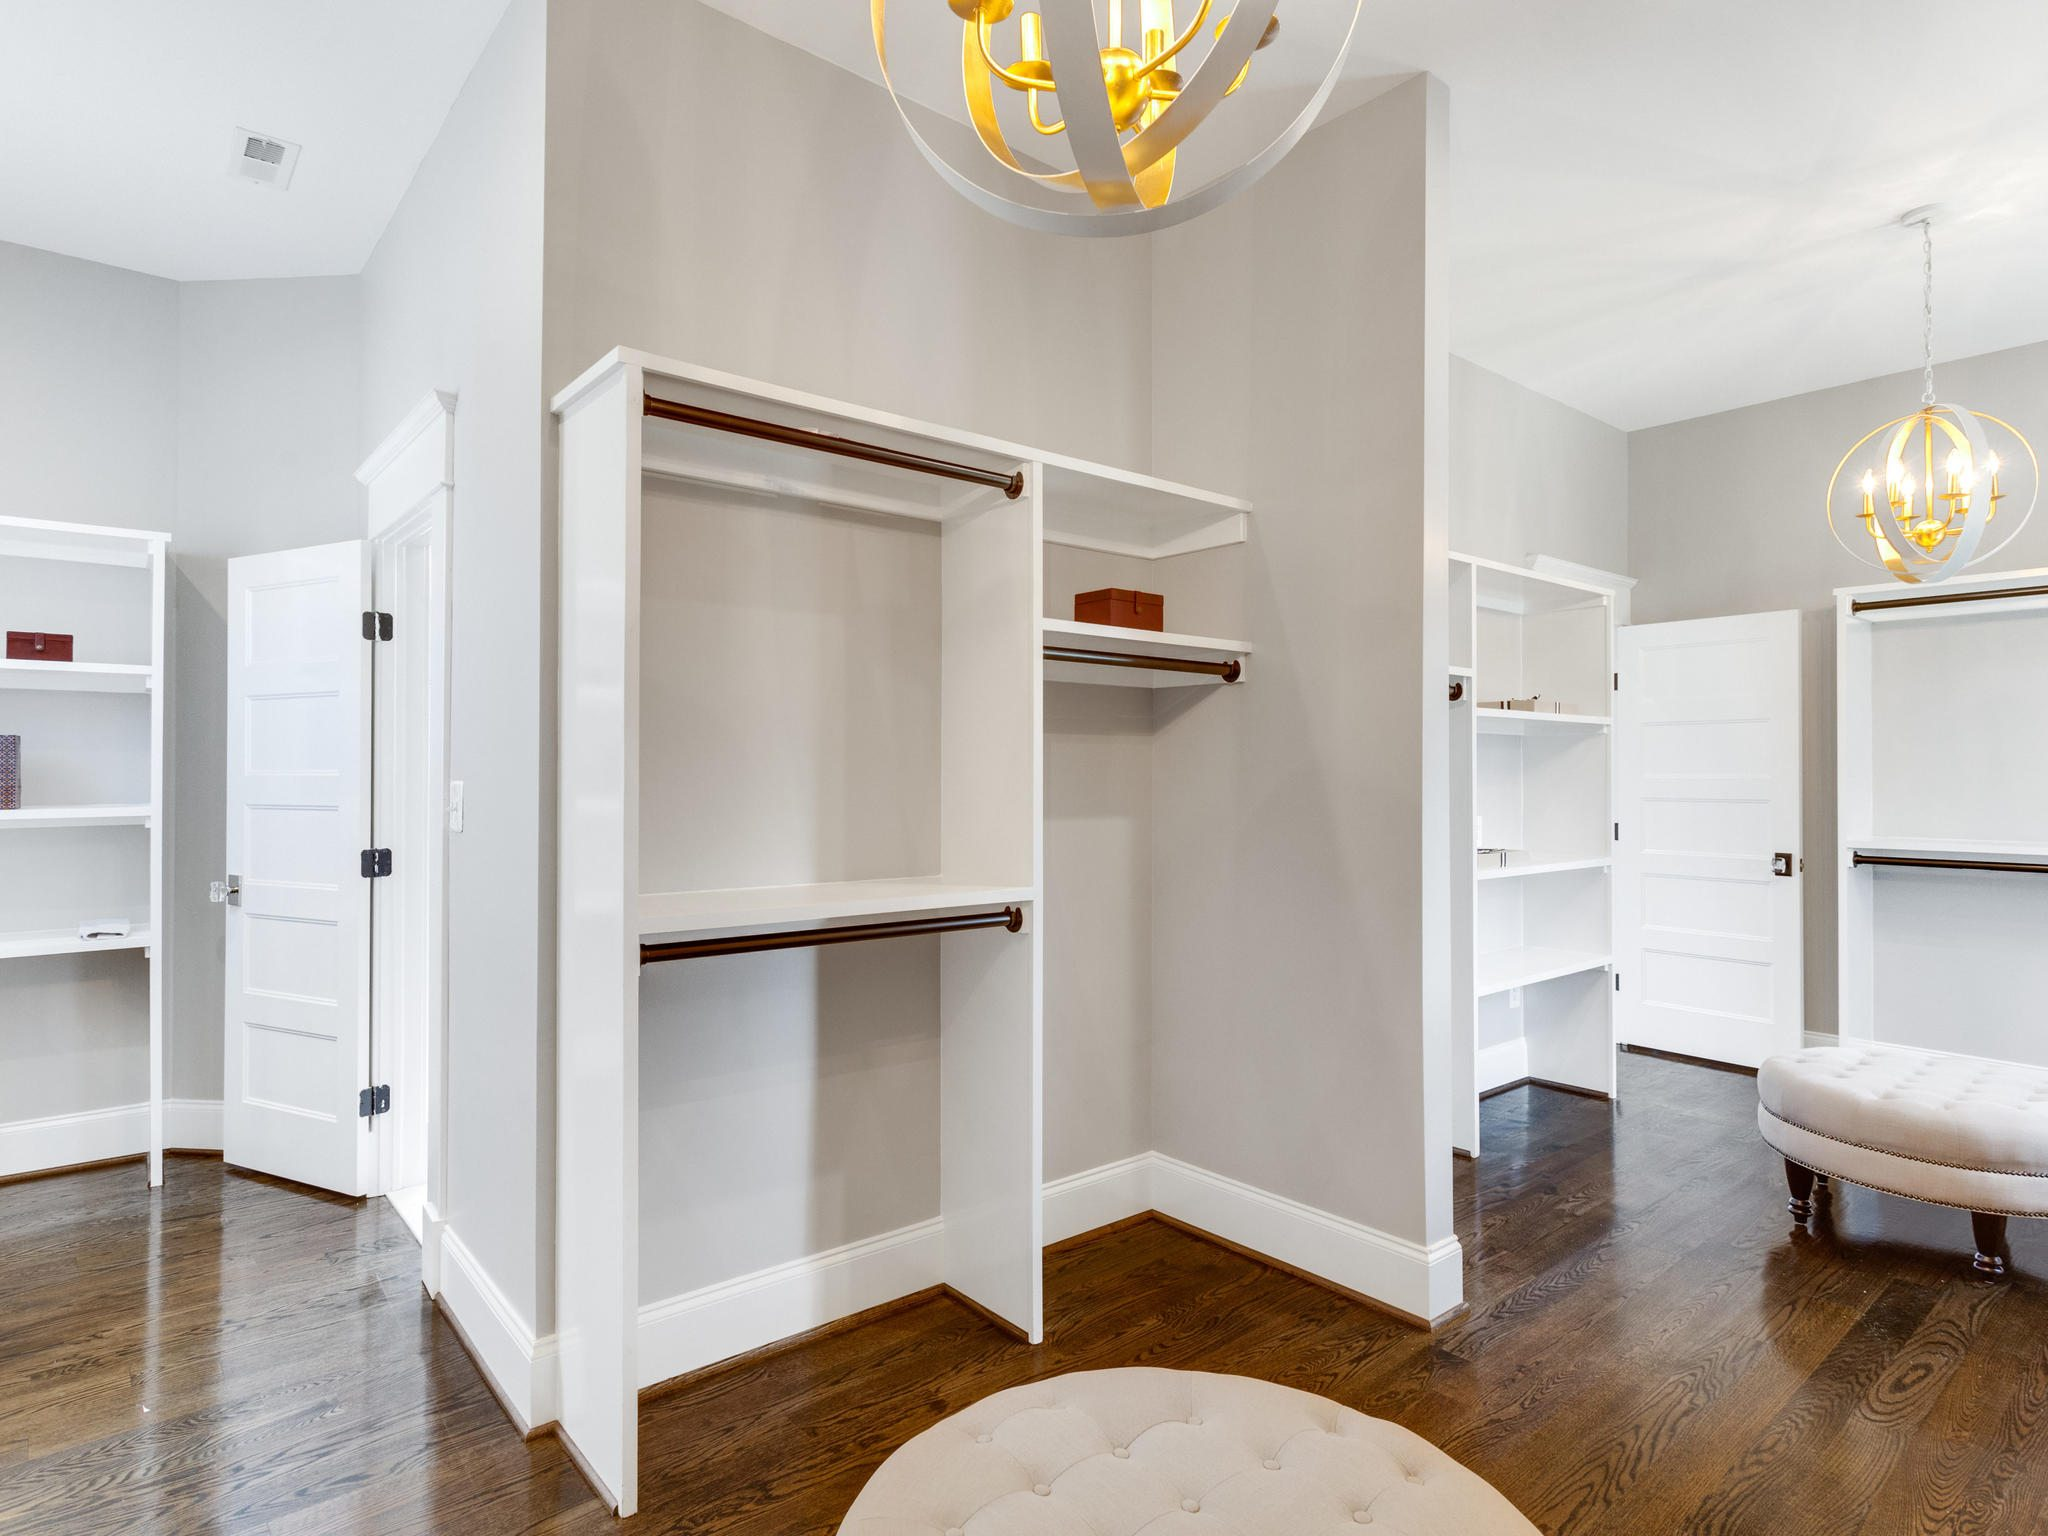 Double master walk in closet has 2 entrances and wraps around master bath. Custom Home by Custom Builder, North Arlington, VA 22207